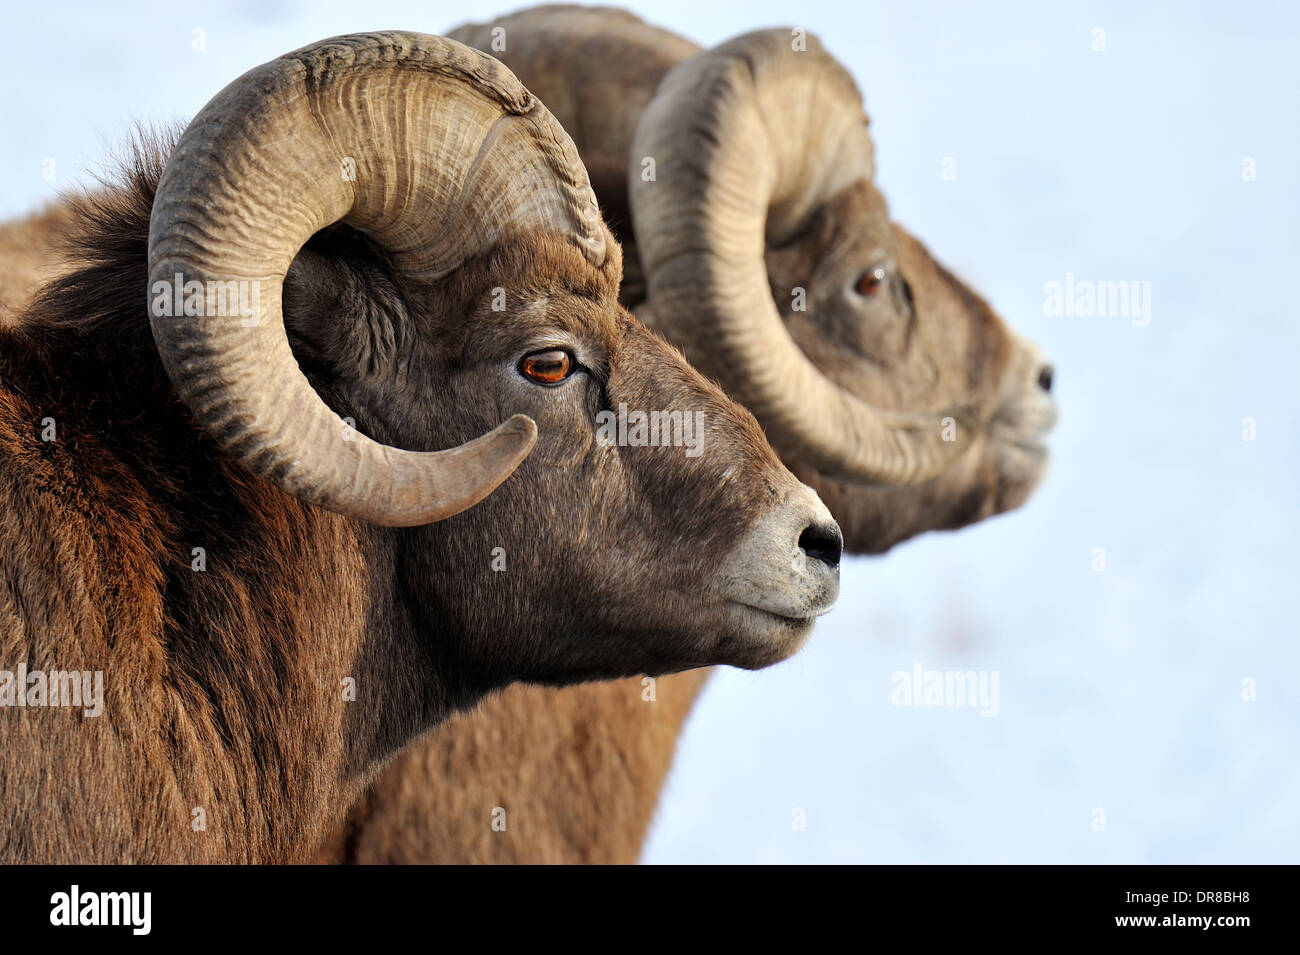 A side portrait view of a wild Bighorn sheep - Stock Image